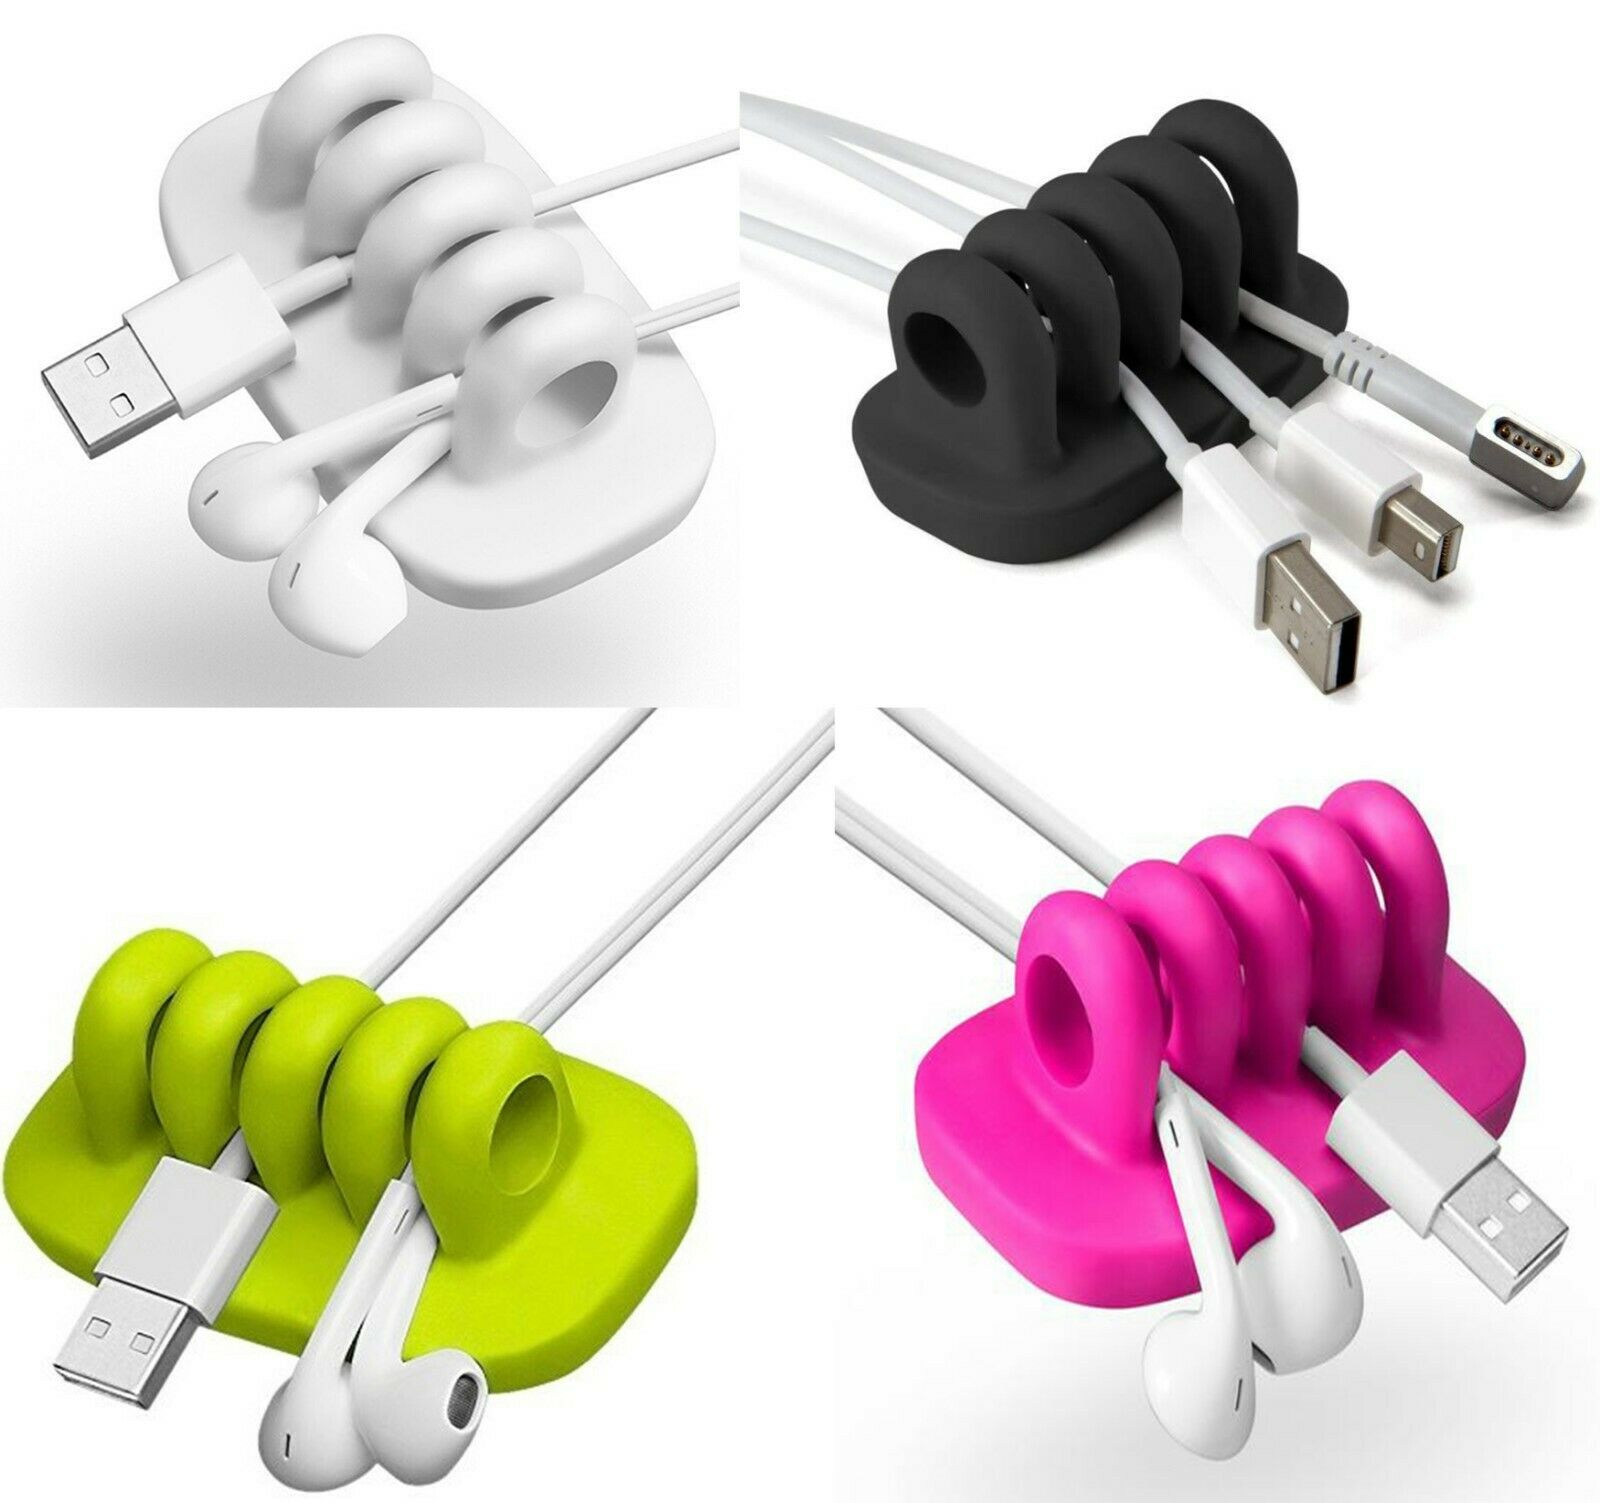 DeskTop Cable Tidy Organiser Charger IPad Computer earphone office Mobile phone